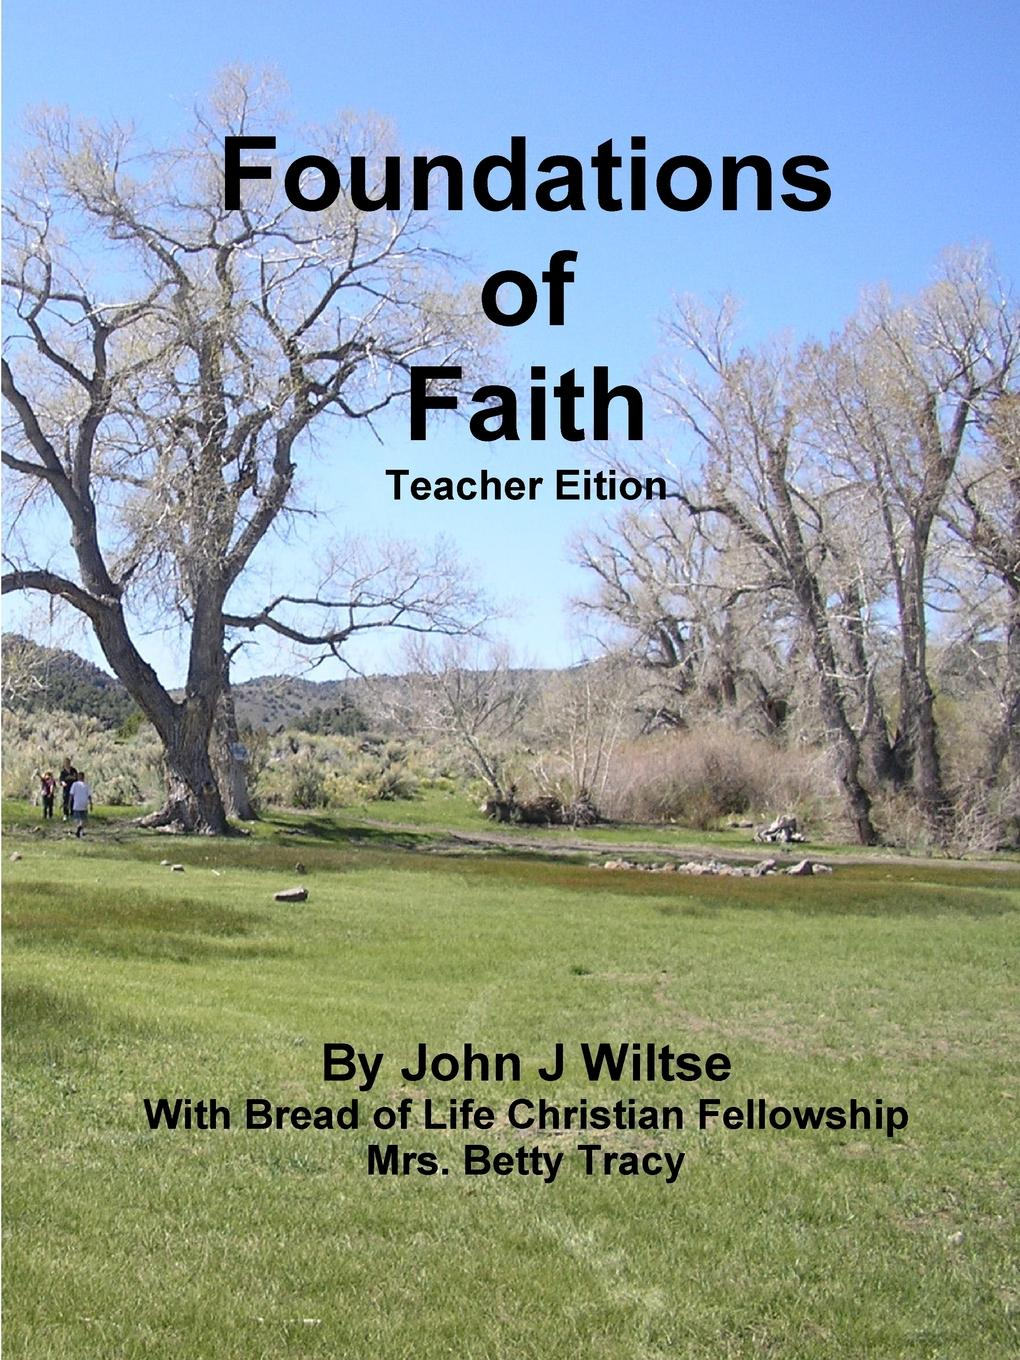 John J Wiltse Foundations of Faith TE kingston george frederick the foundations of faith